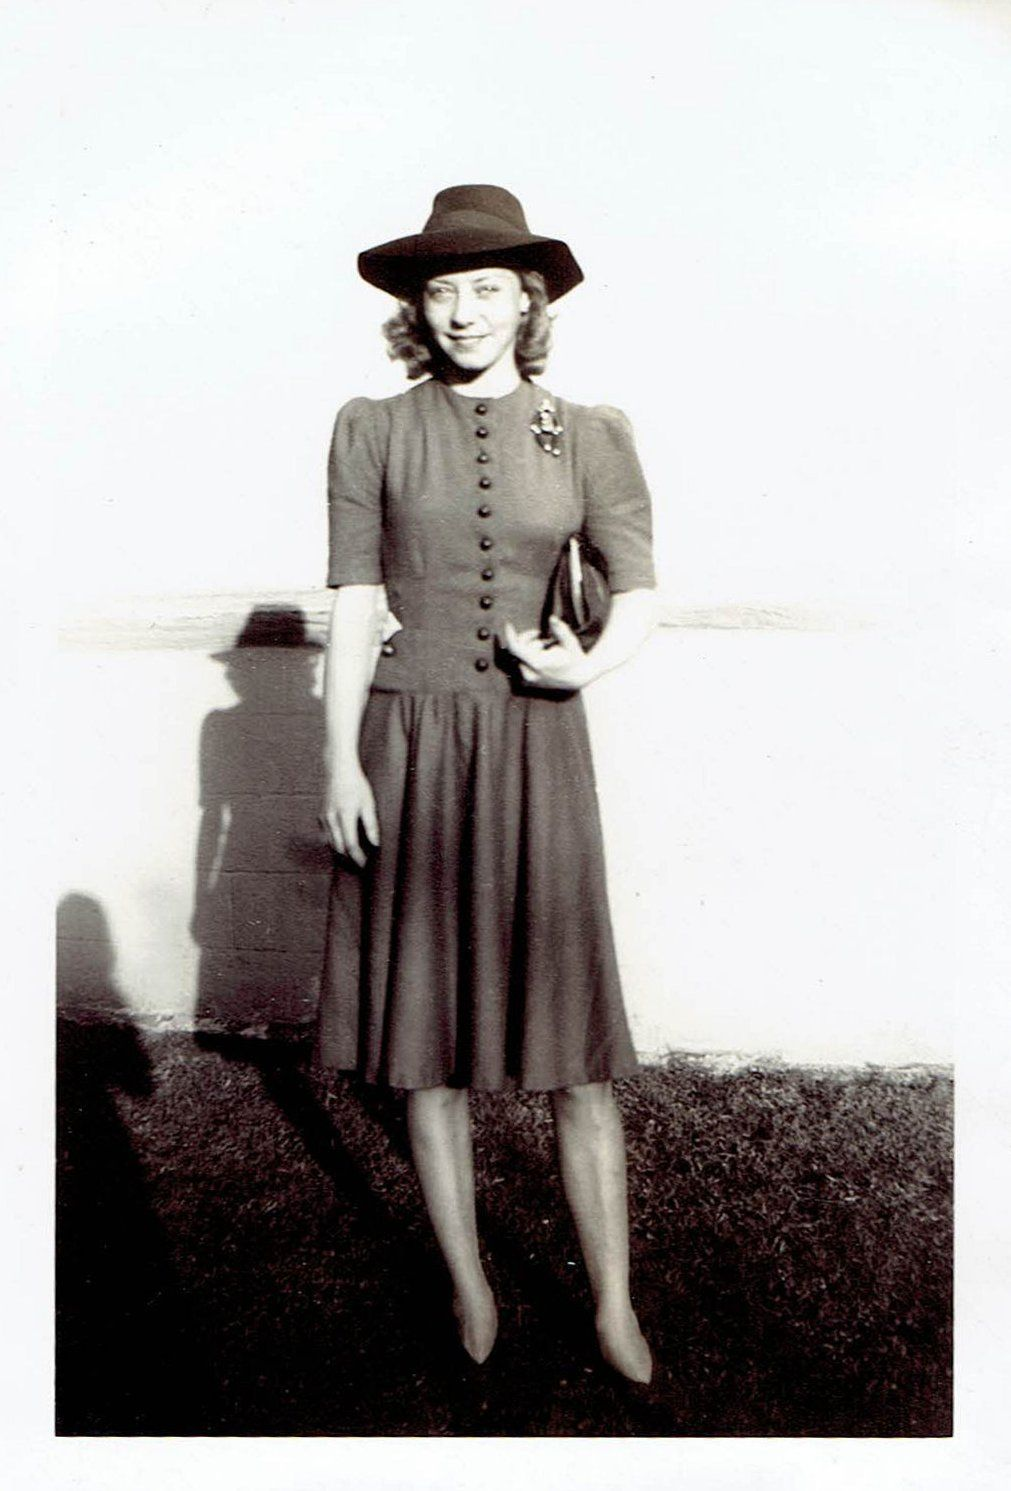 Fashion Flashback Wwii Women S Fashion: Vintage Everyday: What Did Women Wear In The 1940s? Here